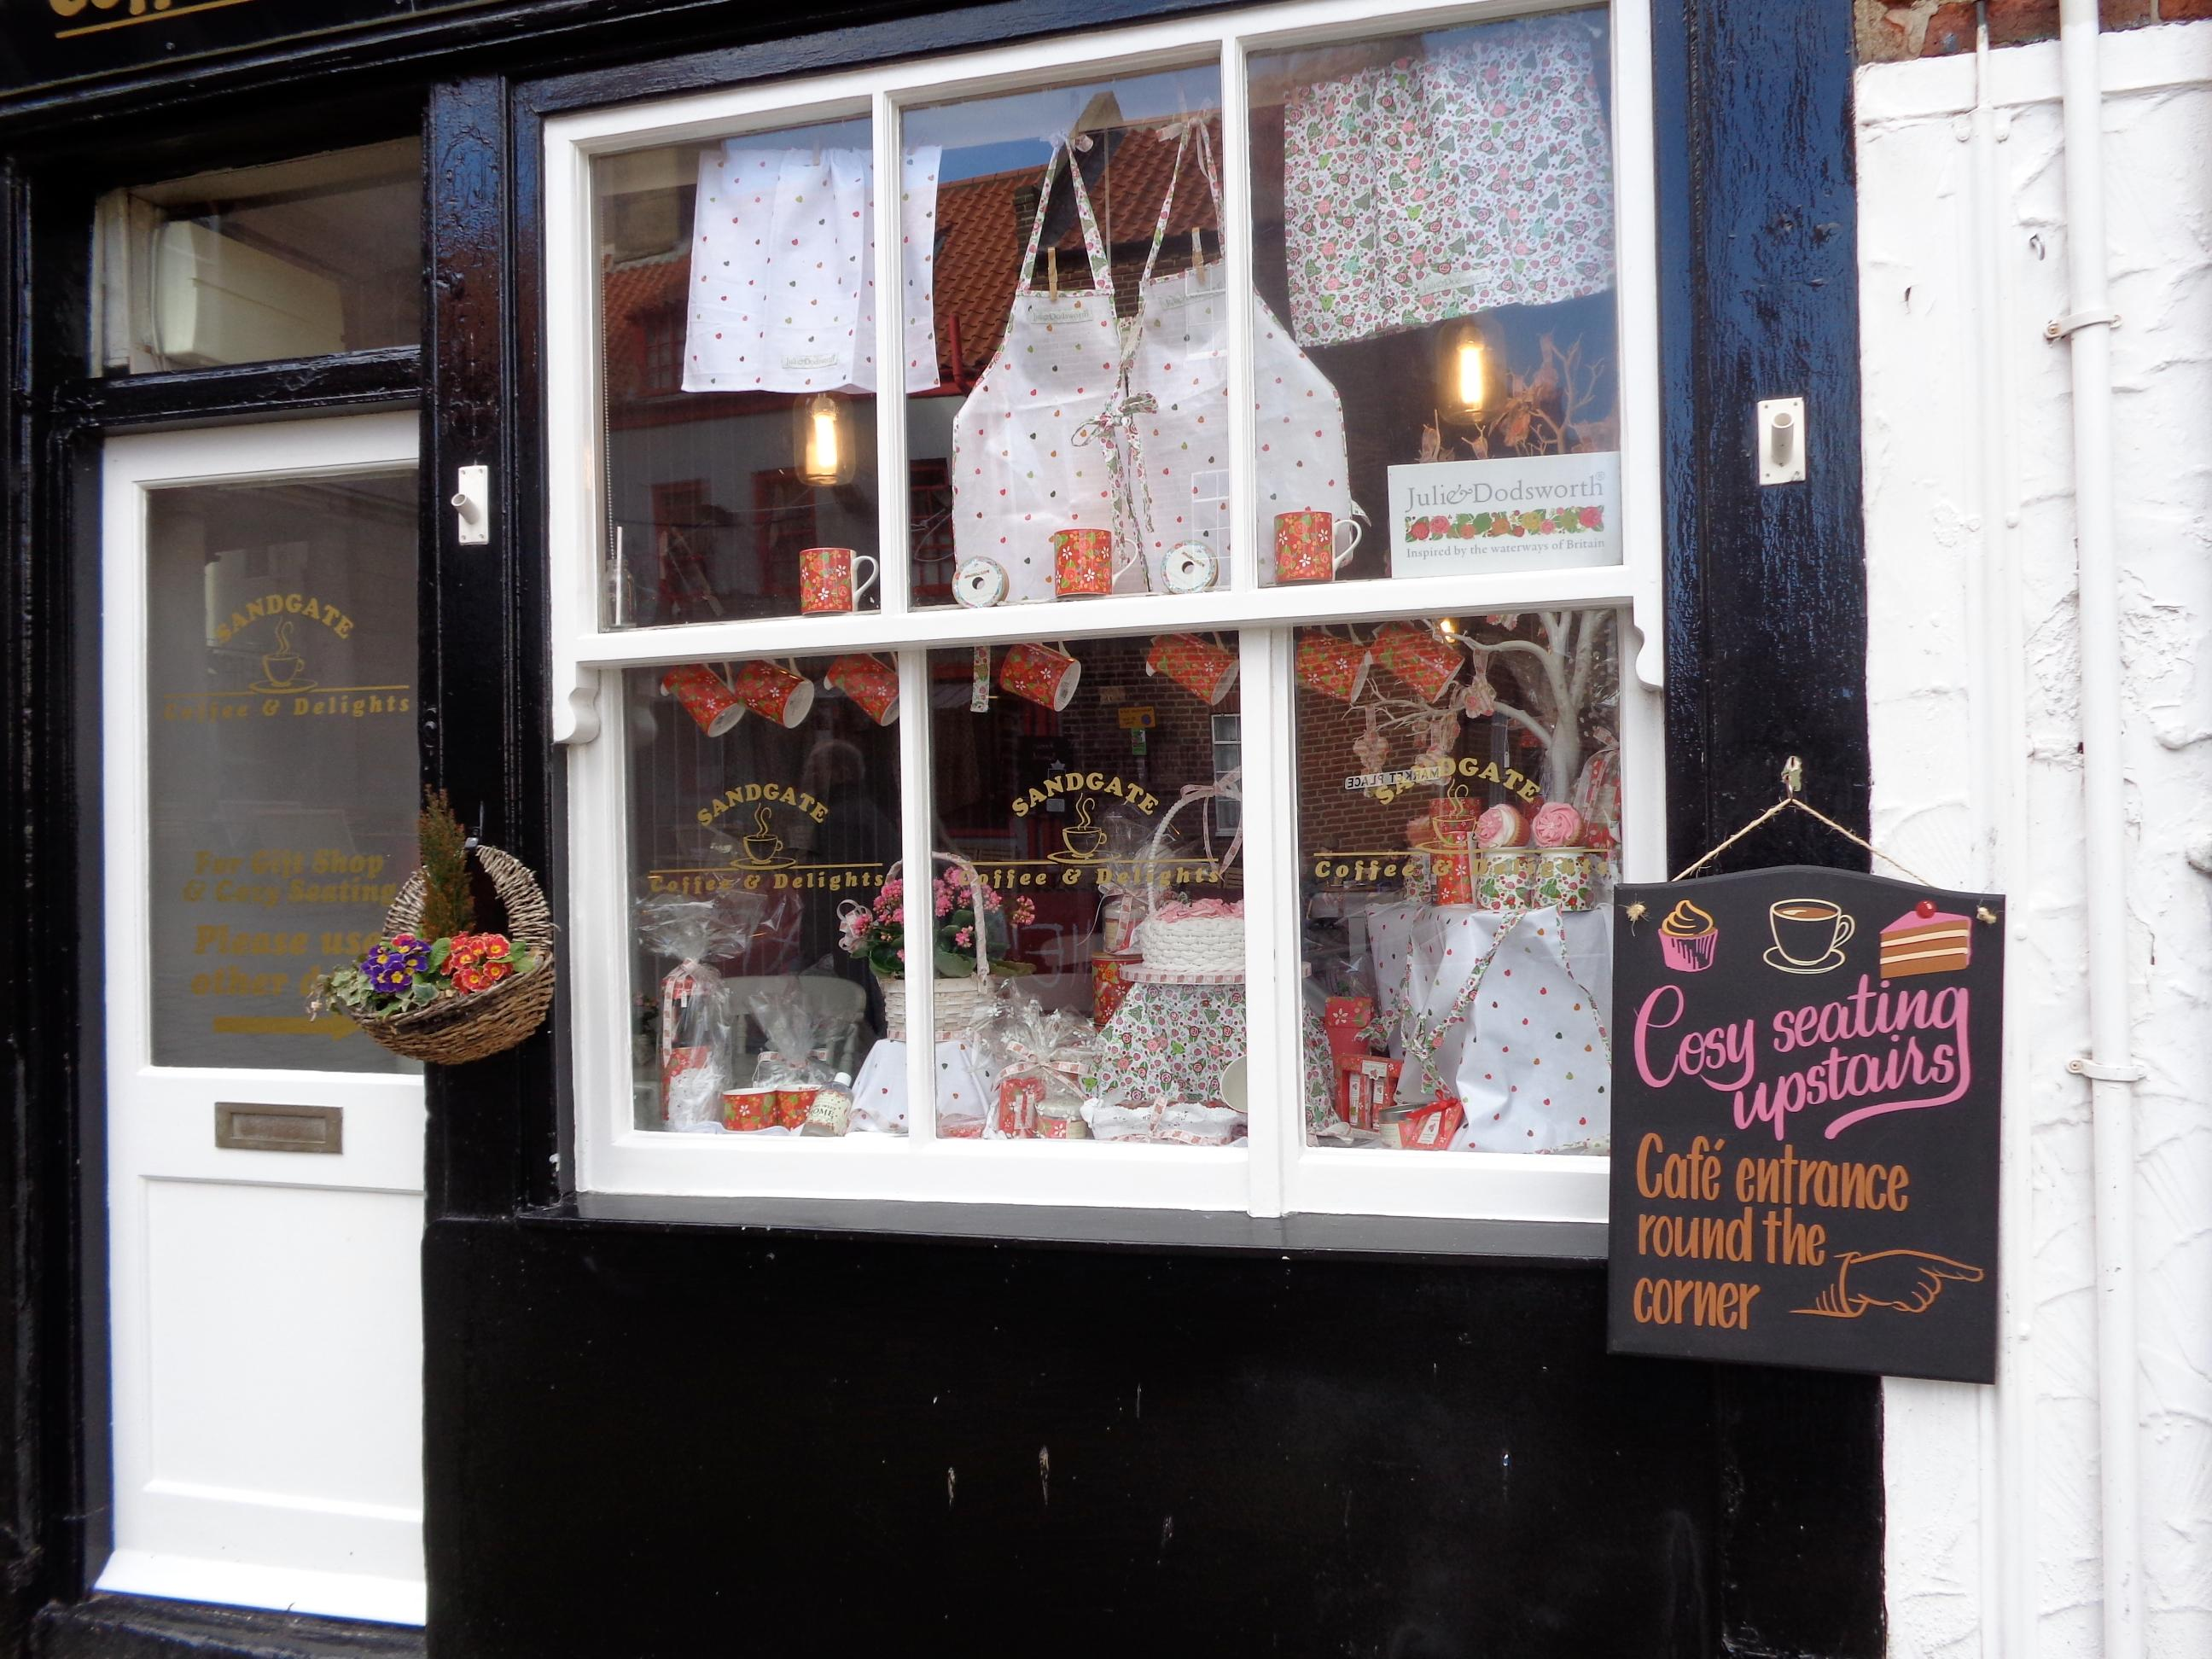 Sandgate Coffee & Delights, Whitby